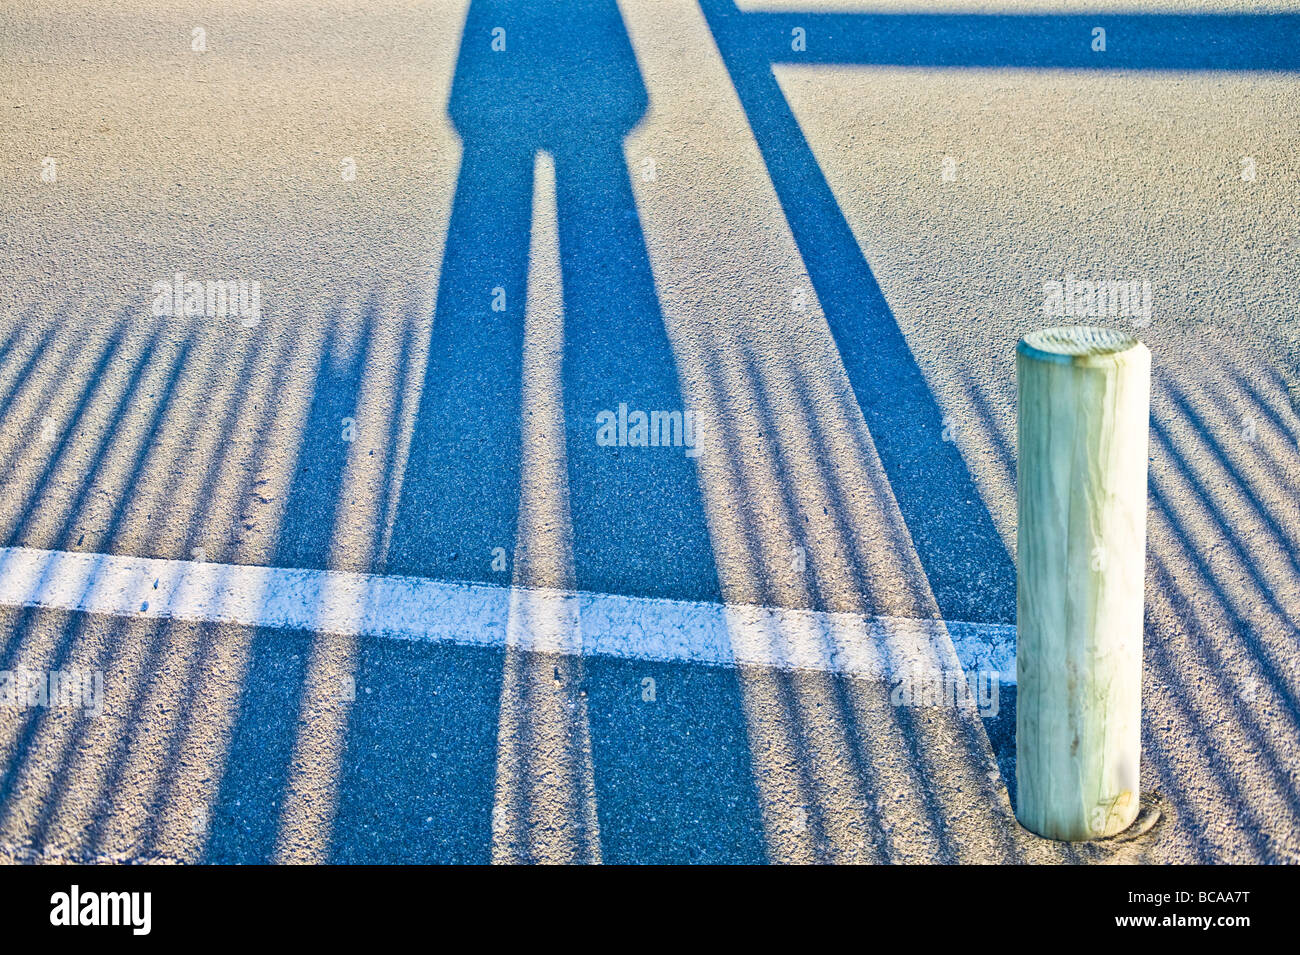 long shadows of a pair of legs and fence on asphalt - Stock Image